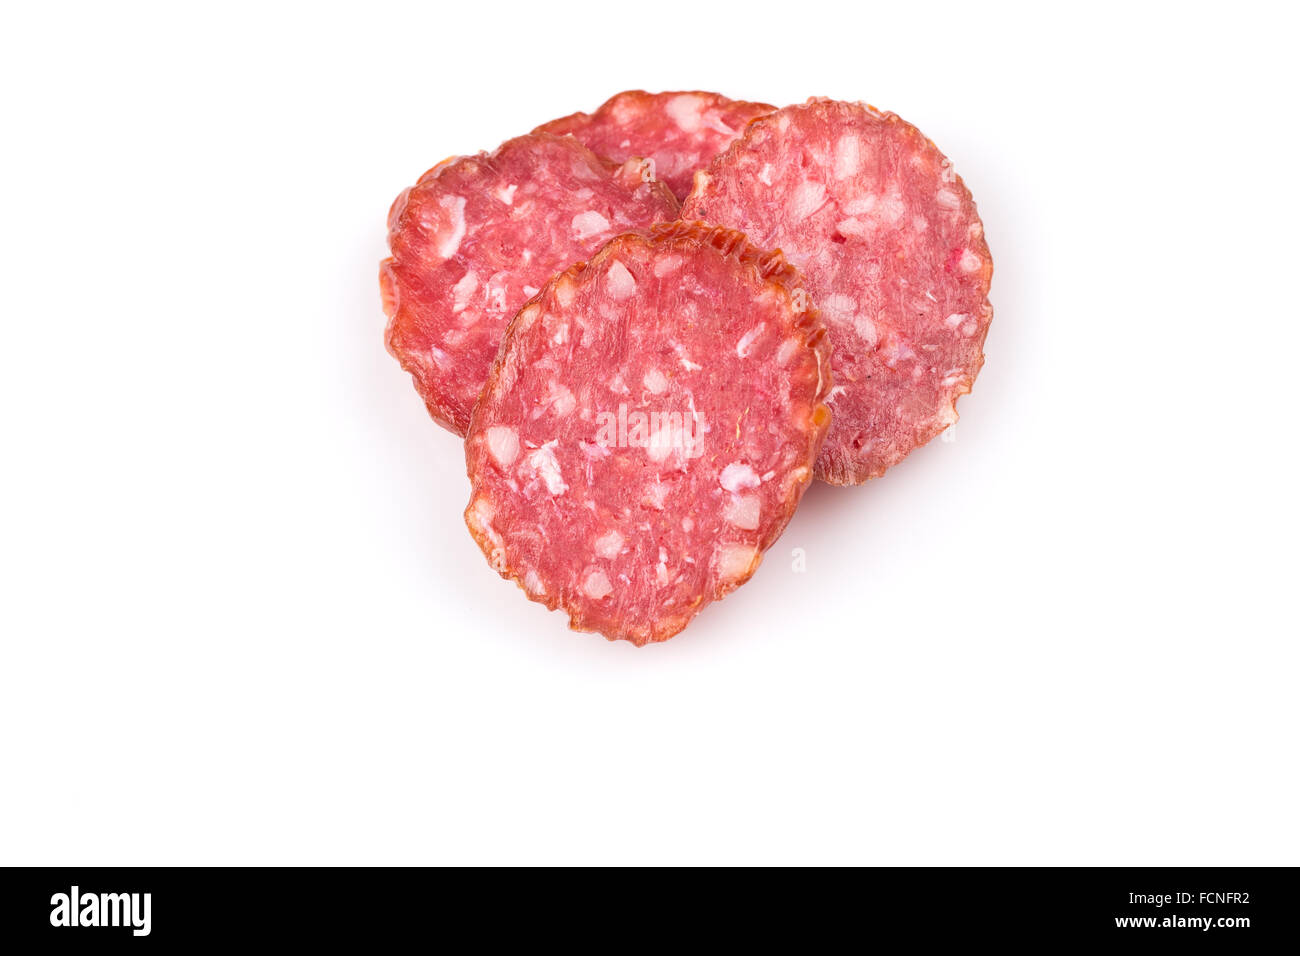 slices of salami isolated on a white background - Stock Image